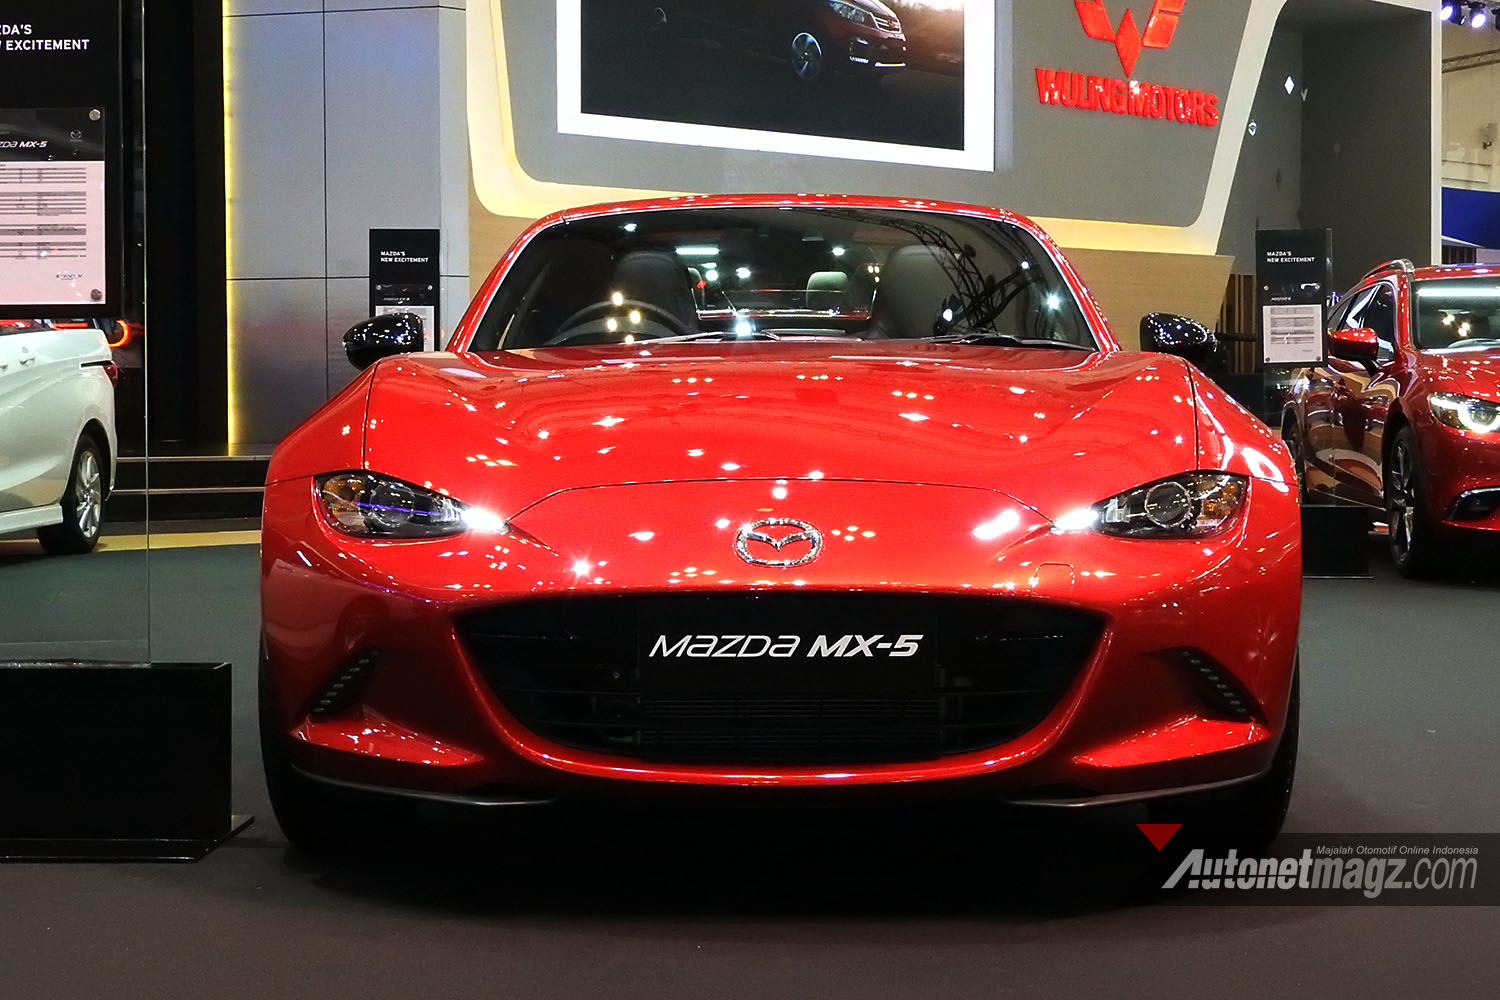 Mazda, mazda mx5 rf miata giias 2017 indonesia front depan: First Impression Review Mazda MX-5 RF 2017 Indonesia